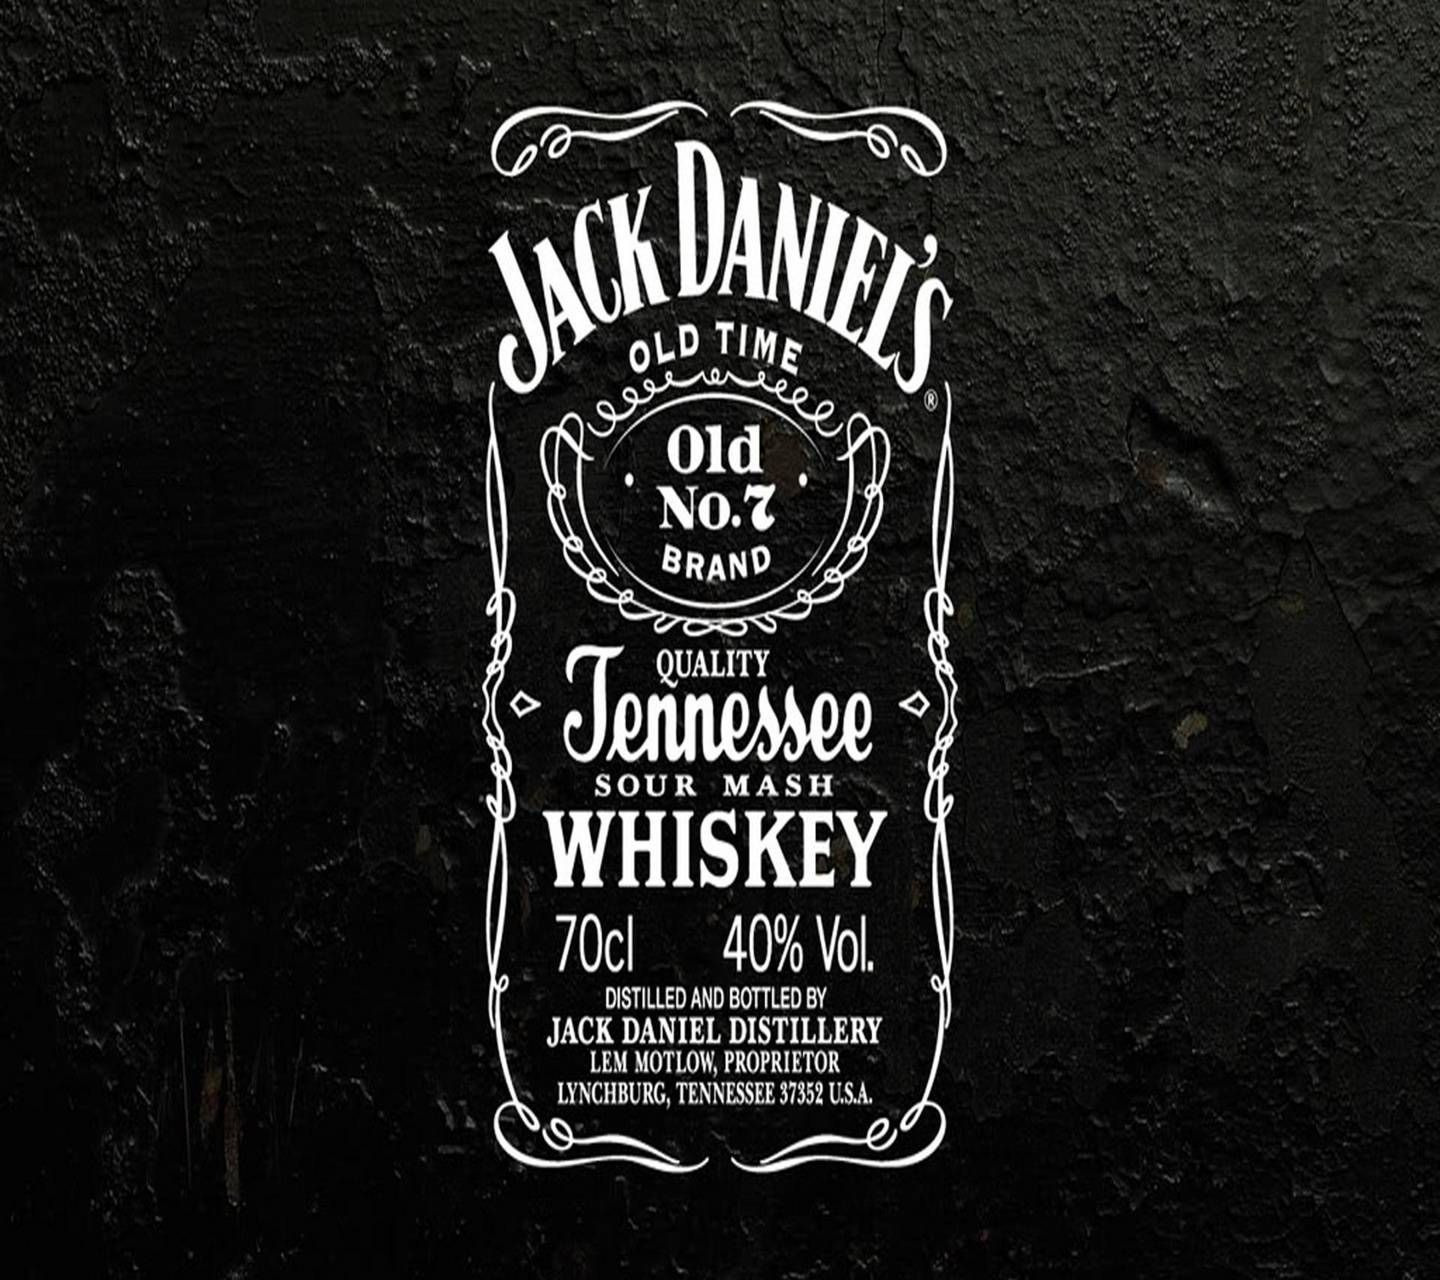 Download Logos Wallpaper By Fr33kypat90 26 Free On Zedge Now Browse Millions Of Popular Abstract Wallpapers And Ringtones On Z Jack Daniels Daniel Whisky